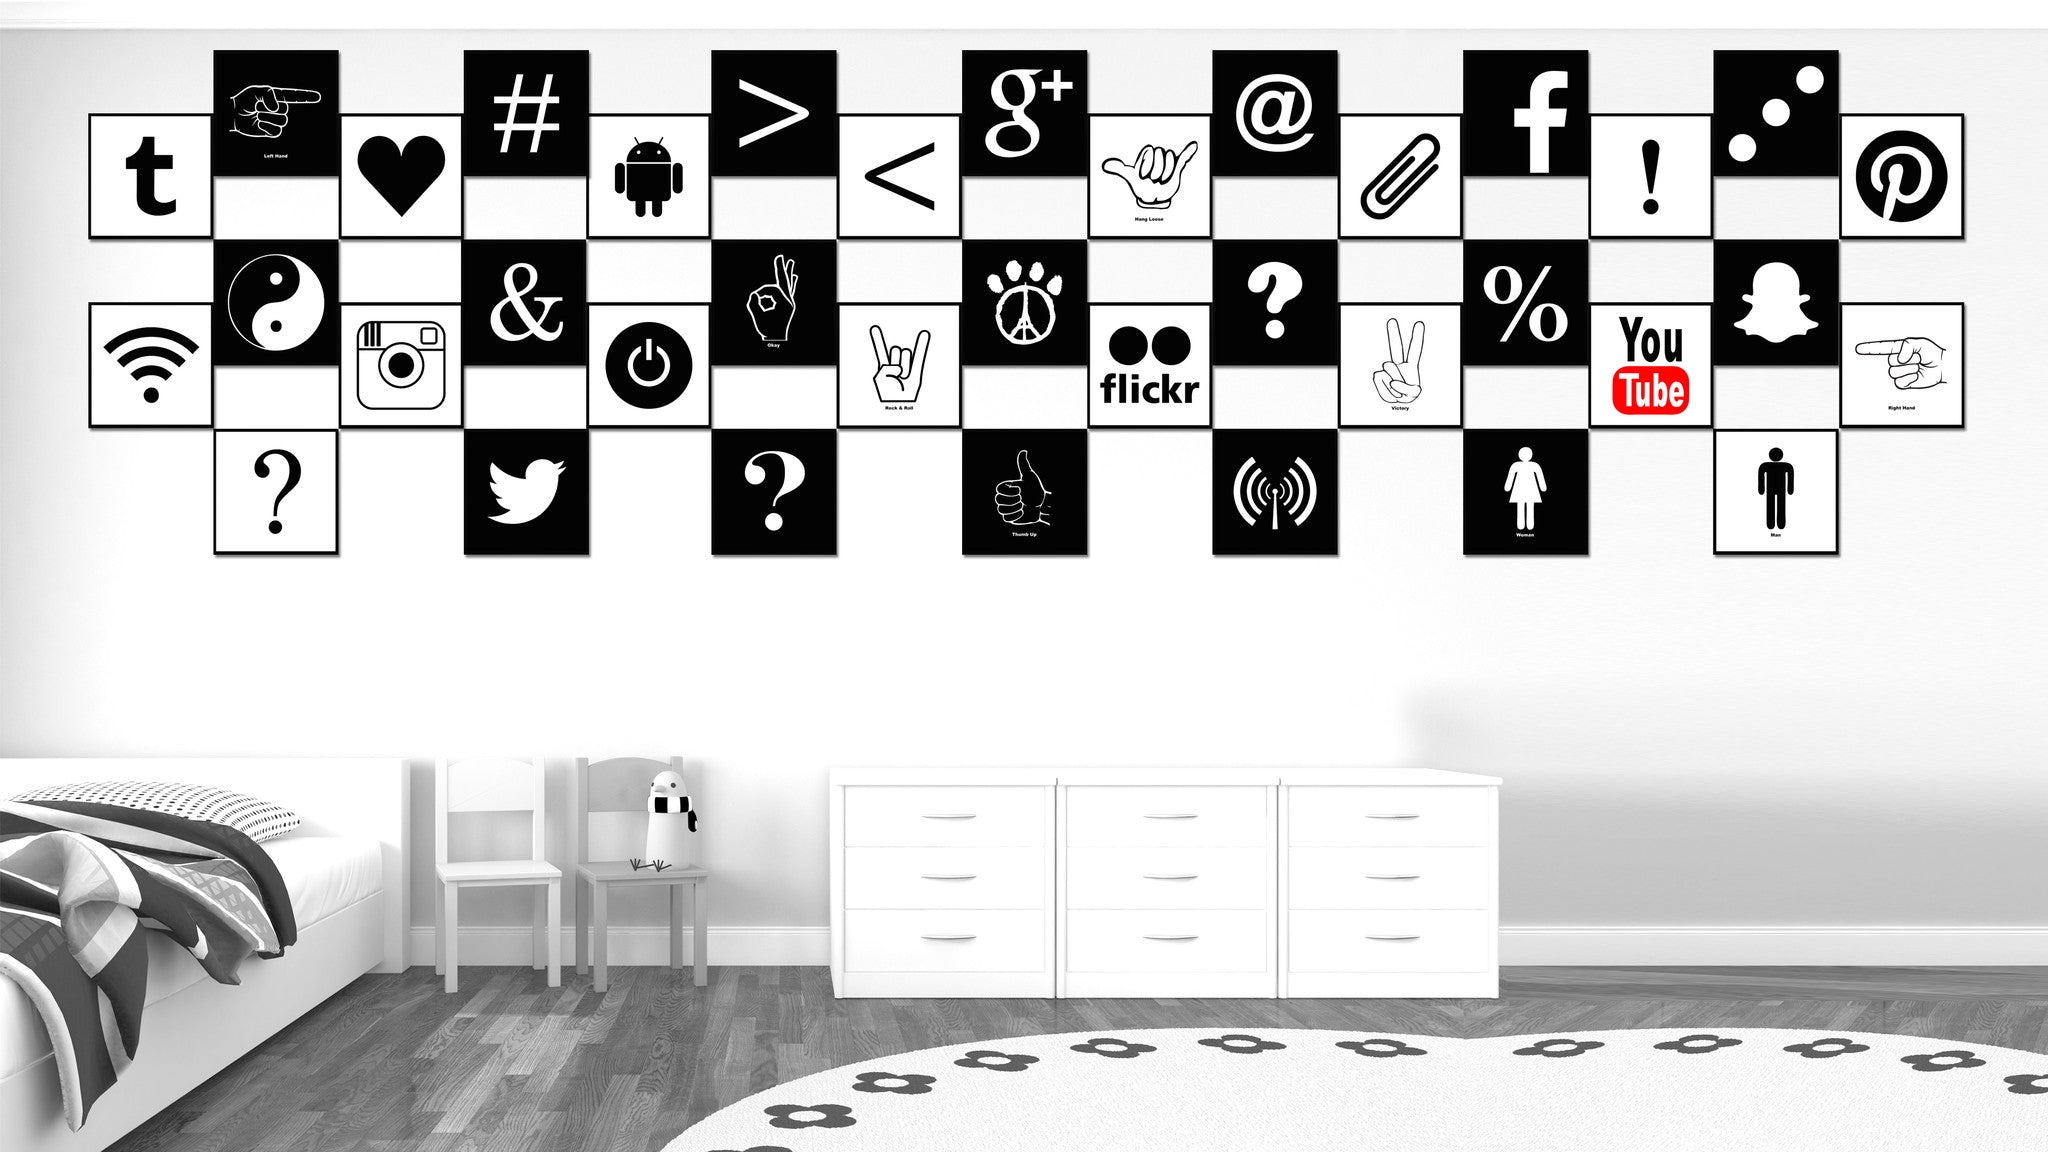 Right Social Media Icon Canvas Print Picture Frame Wall Art Home Decor